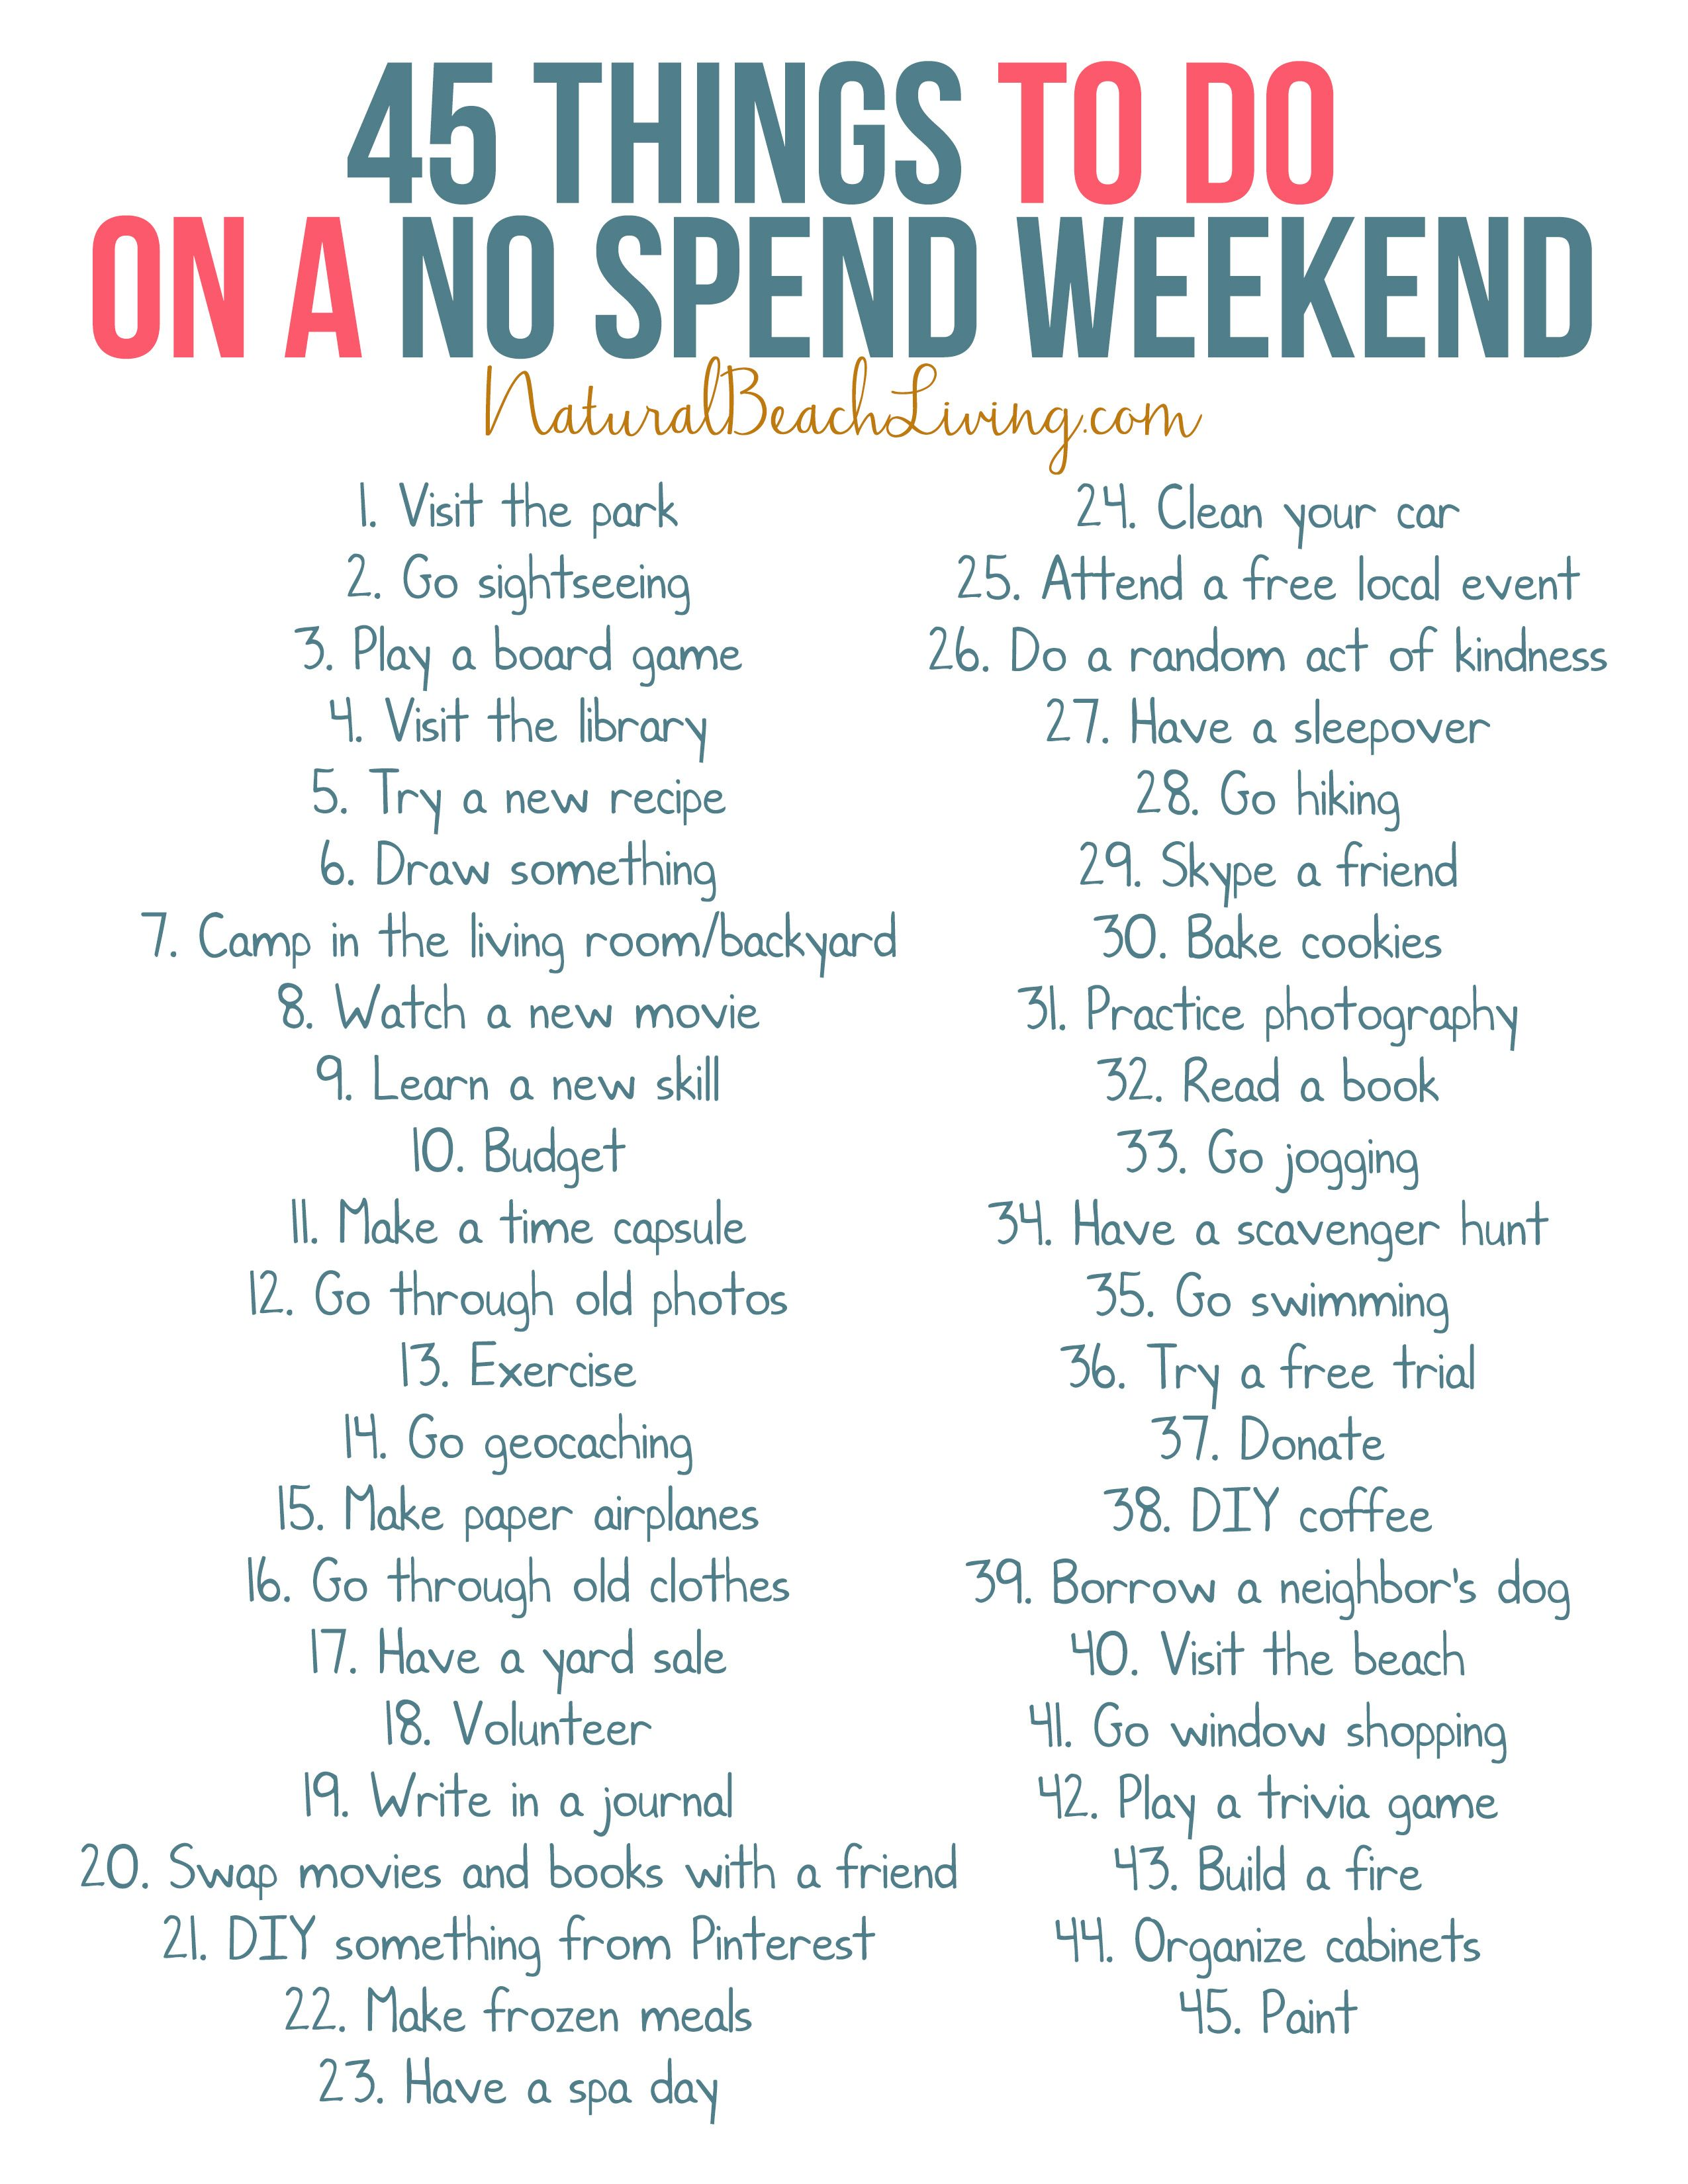 Things to do on a saturday